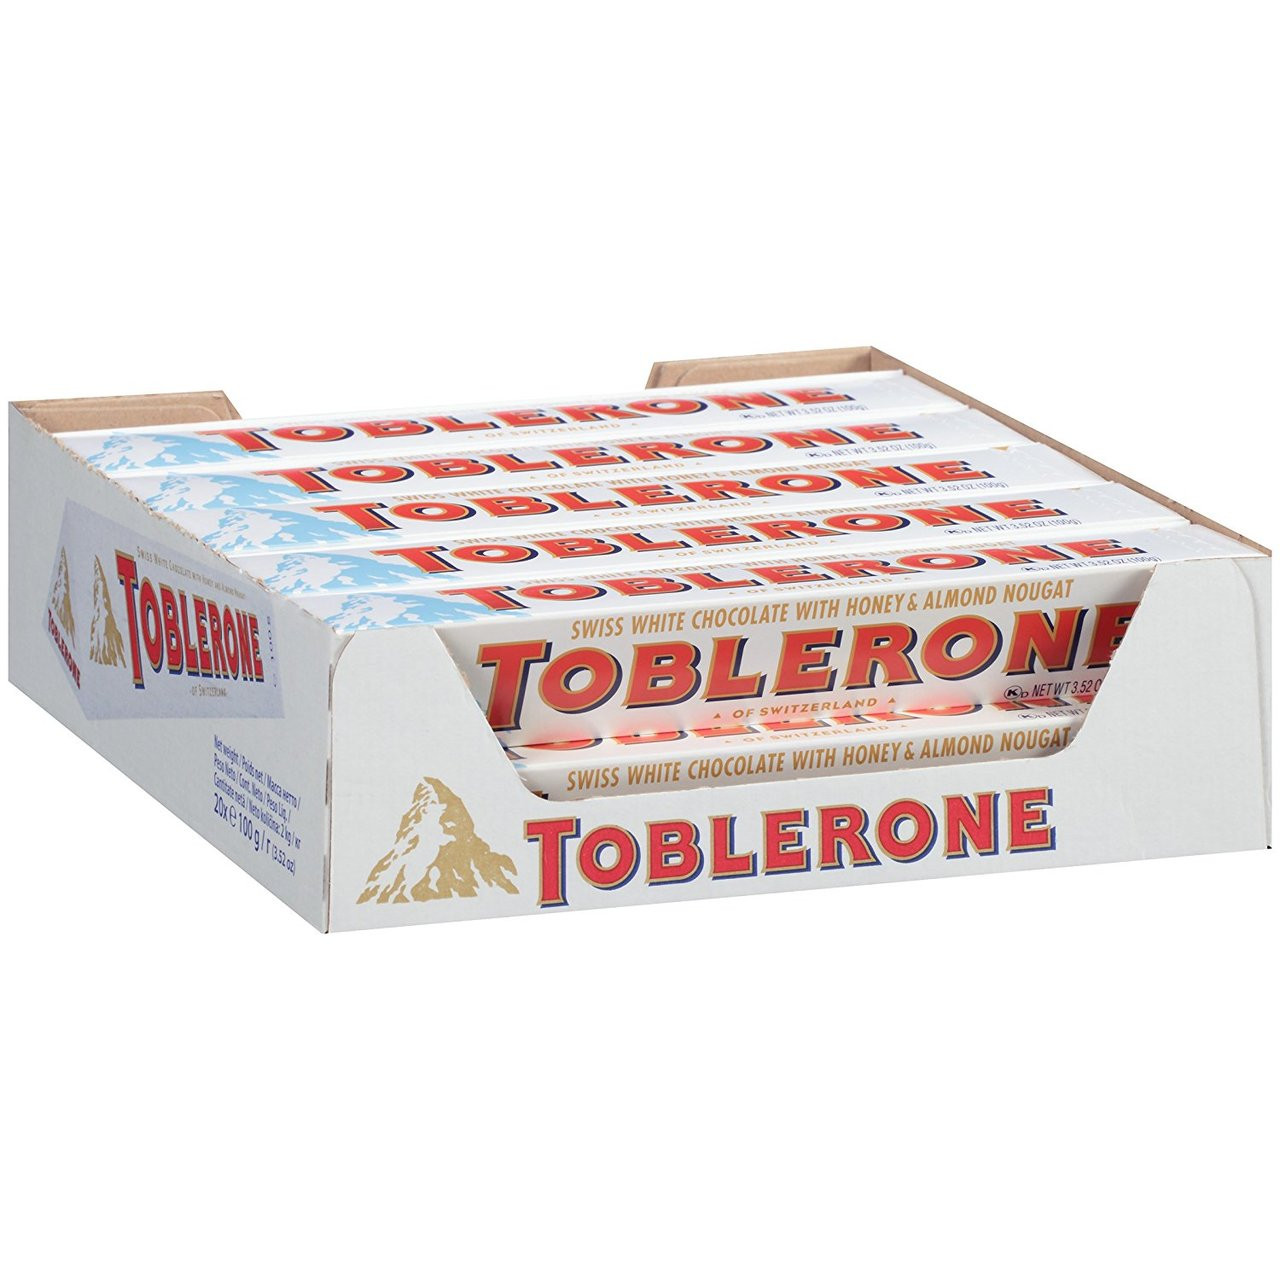 Toblerone Swiss White Chocolate With Honey And Almond Nougat 352 Oz 20 Count